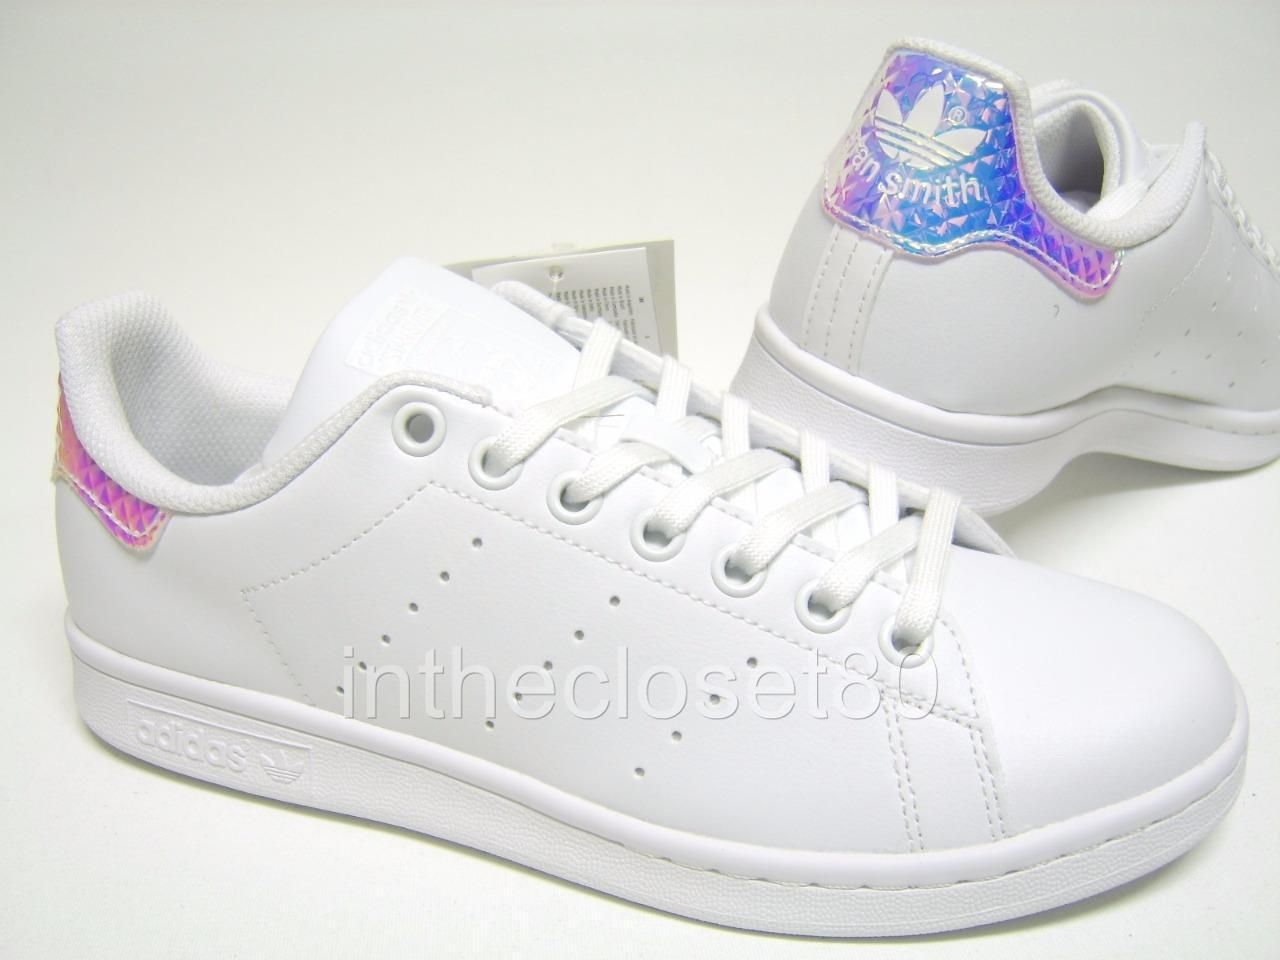 sports shoes 12732 424b9 Adidas Stan Smith Iridescent 3D GS White Shiny Silver Juniors Girls Women  CG2954   eBay